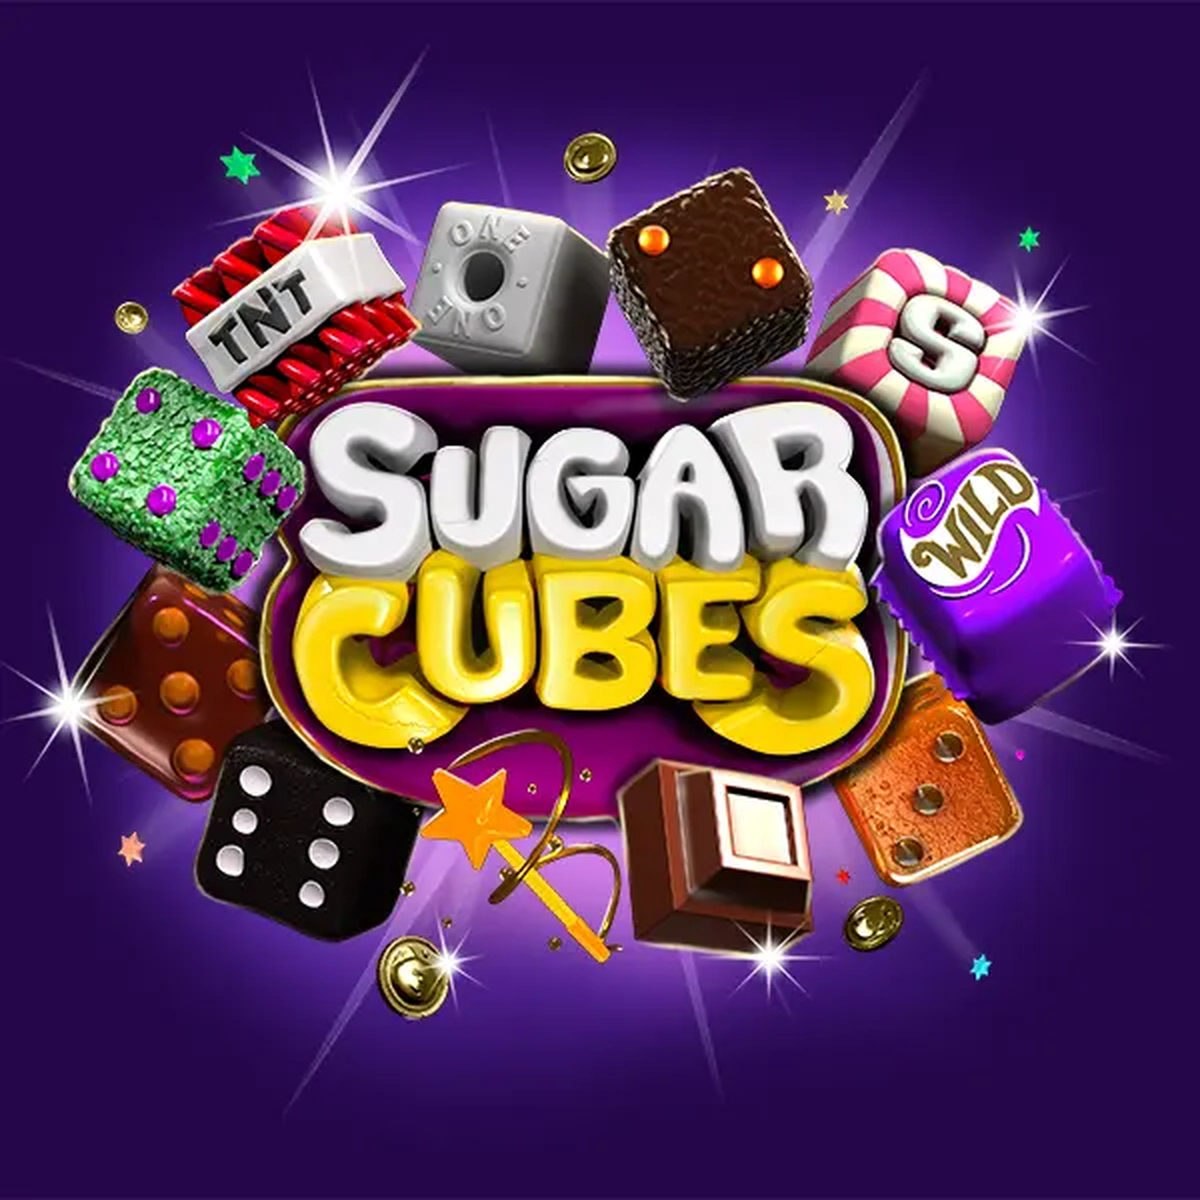 The Sugar Cubes Online Slot Demo Game by DiceLab